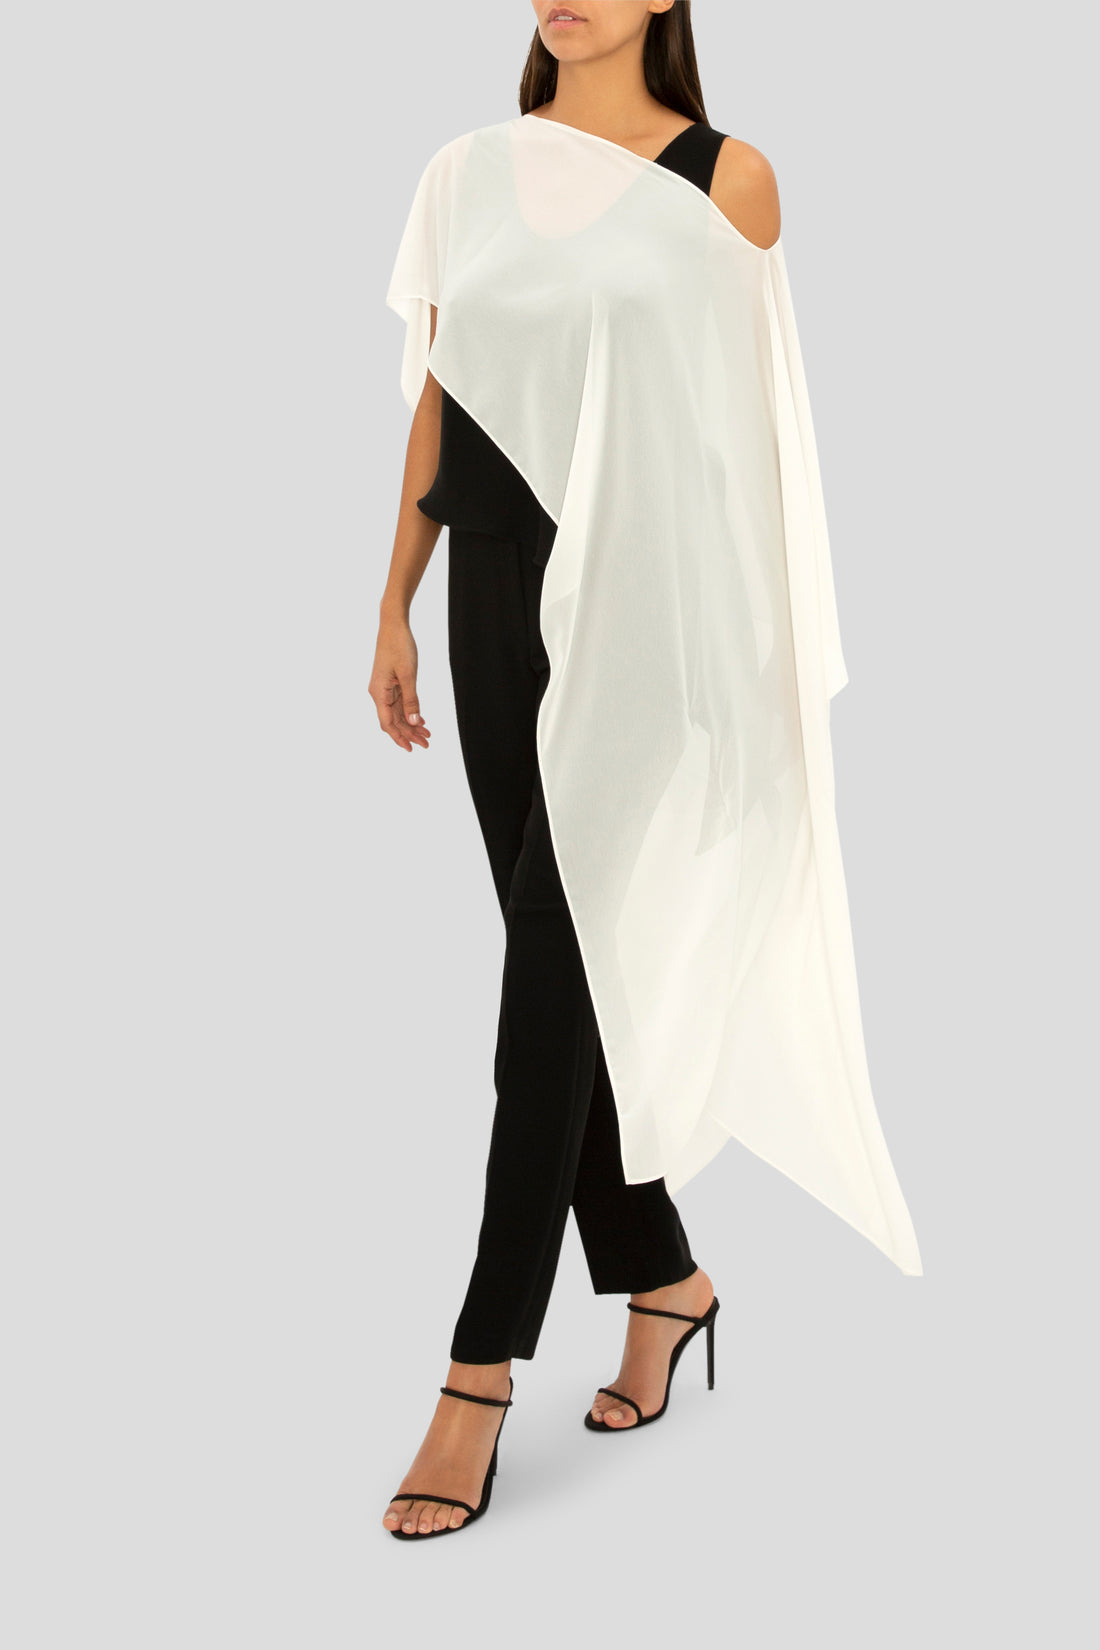 CREAM GEORGETTE GATSBY COVER UP